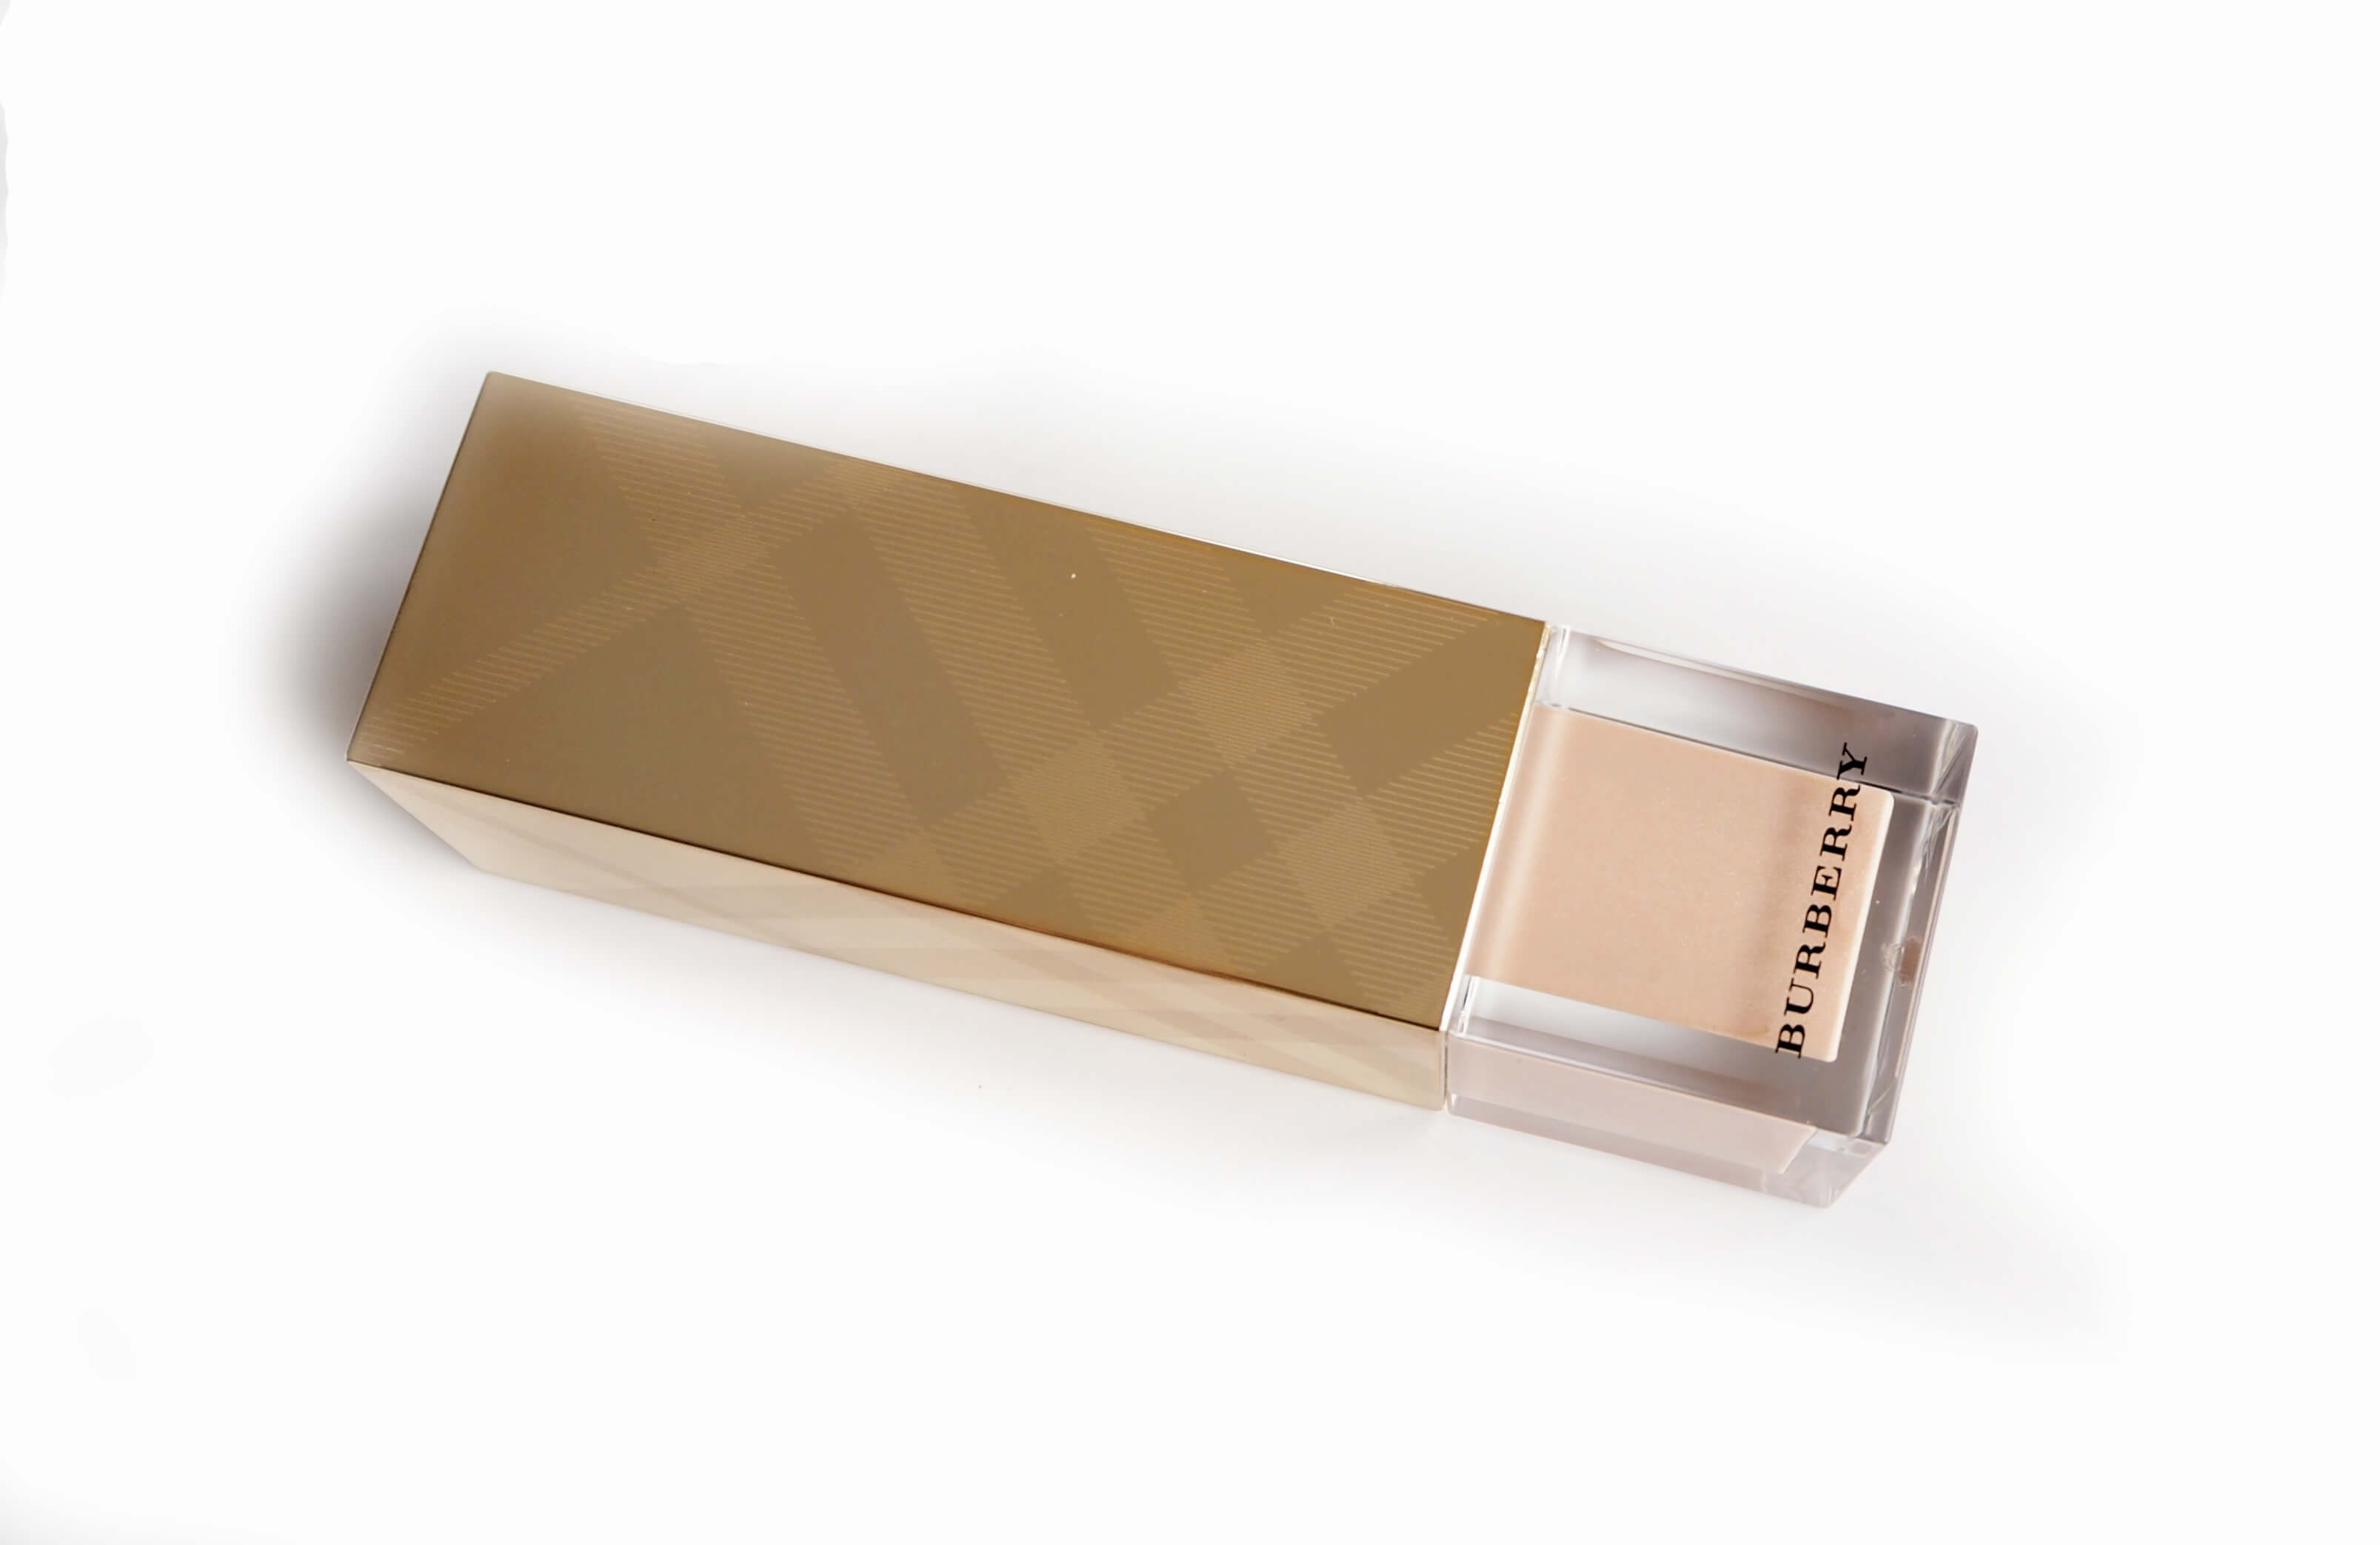 BURBERRY BAZA FRESH GLOW LUMINOUS BASE